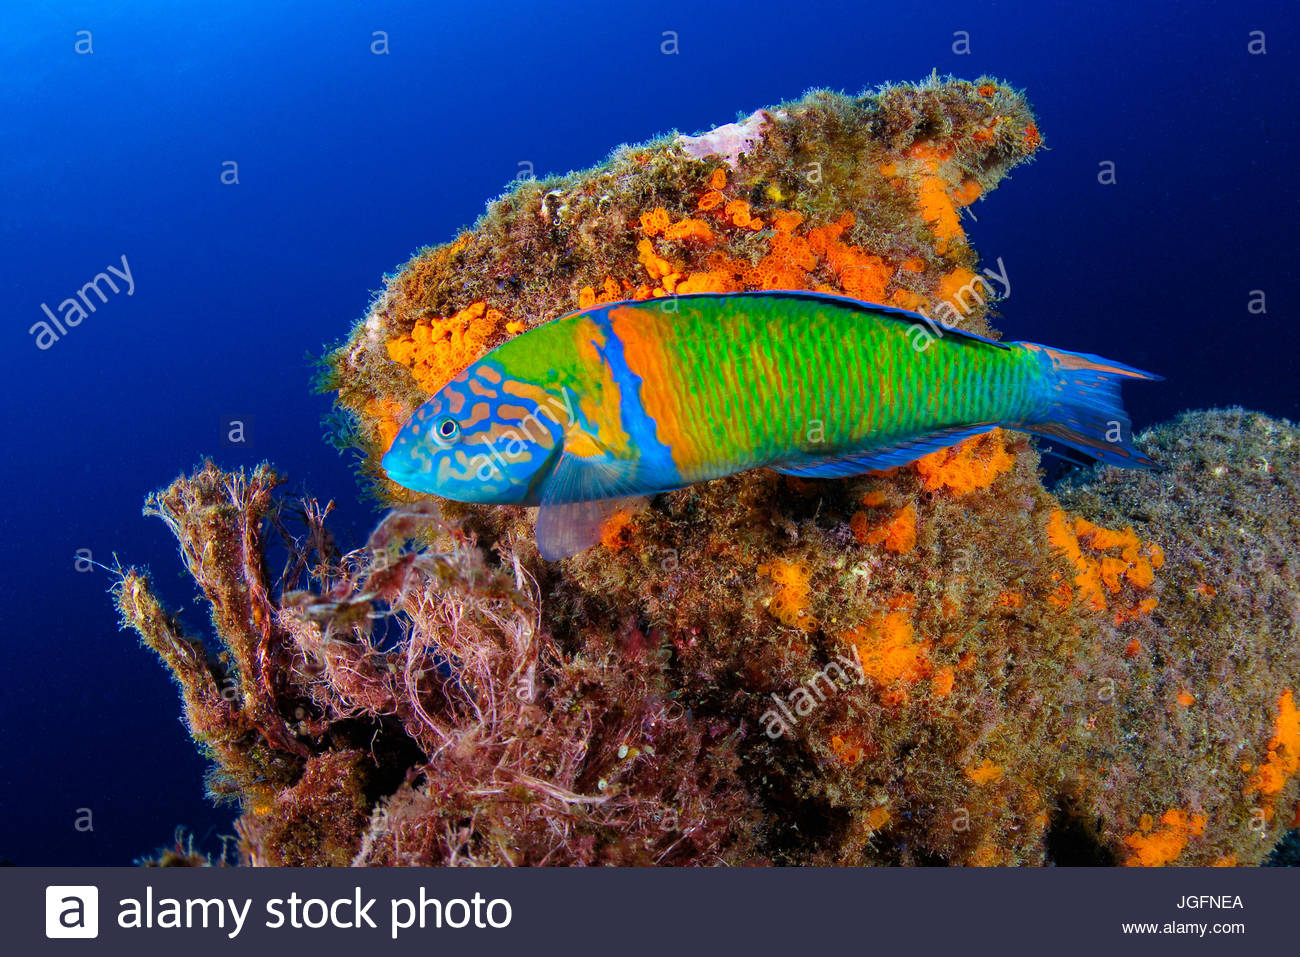 The ornate wrasse, Thalassoma pavo, is a species of wrasse native to the eastern Atlantic Ocean. Here it swims along - Stock Image